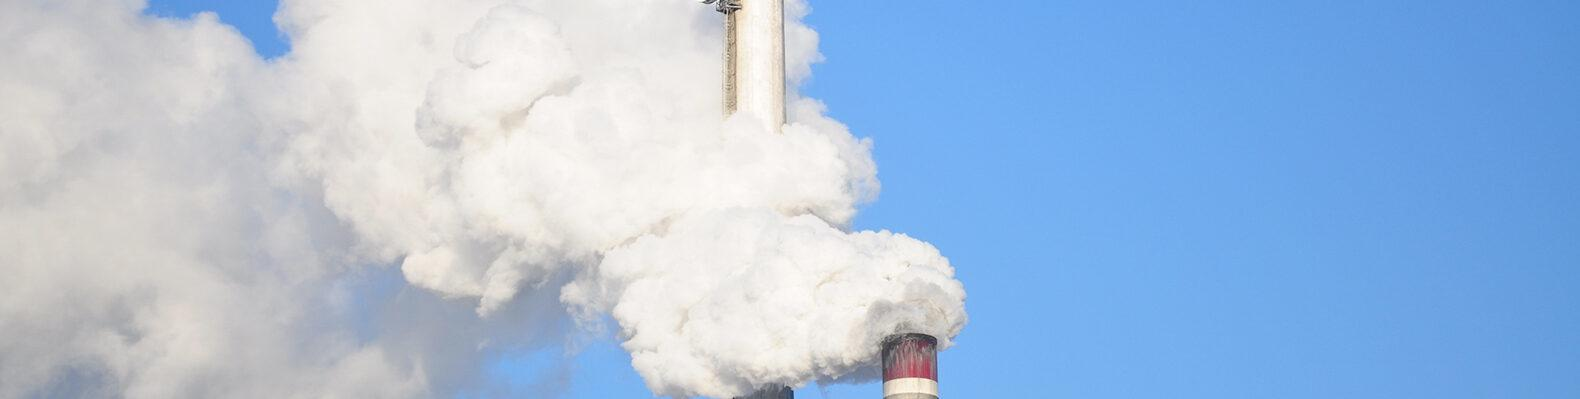 smoke stacks against a blue sky